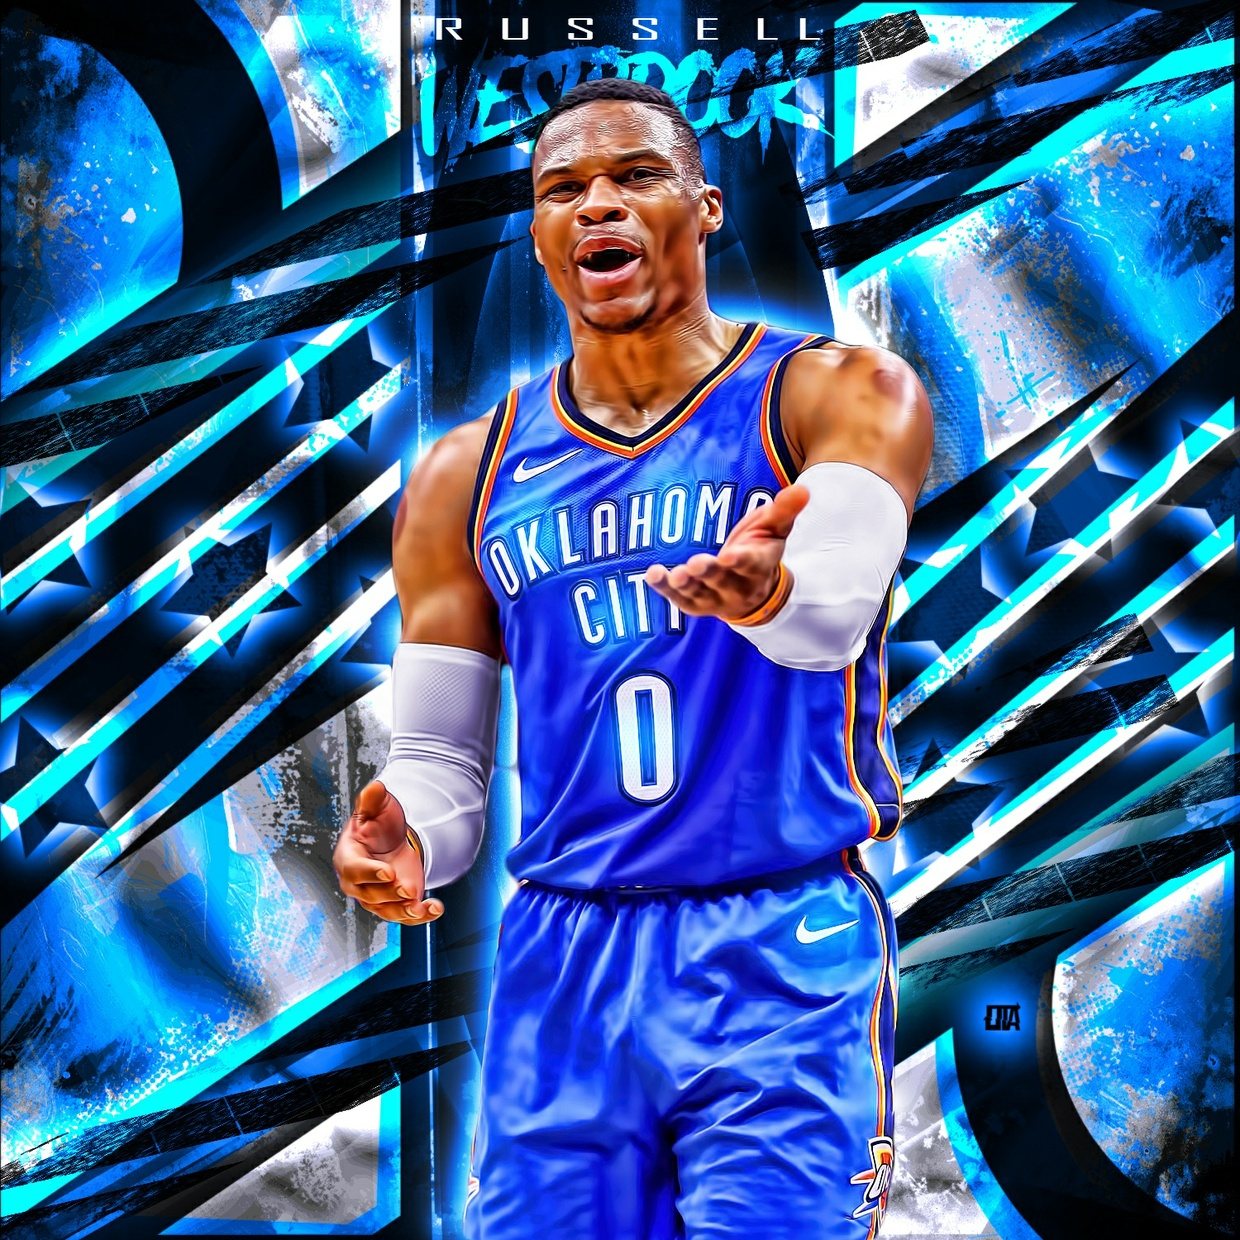 Russell Westbrook PSD